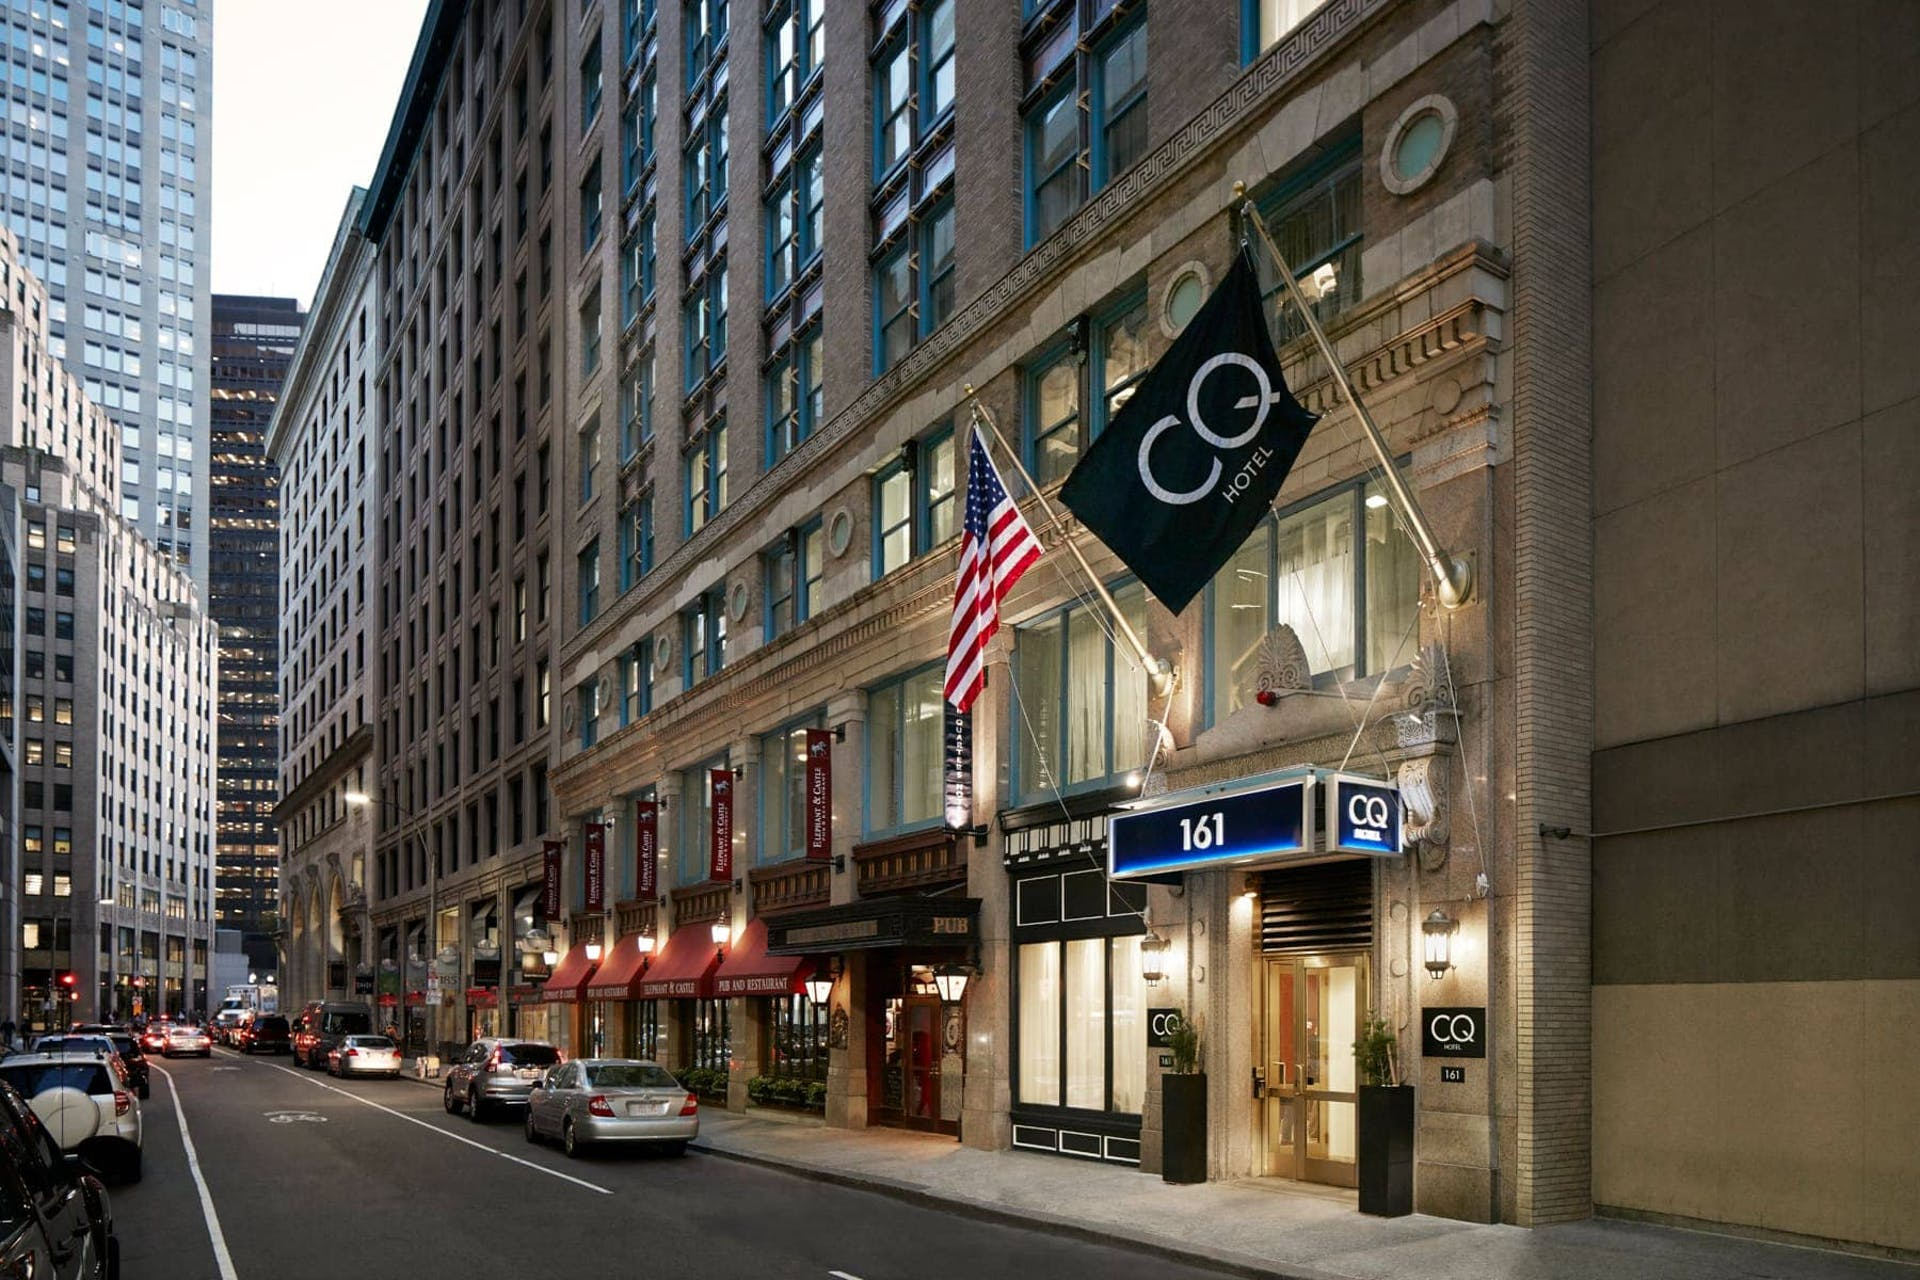 Exterior of CQ Hotels in Boston